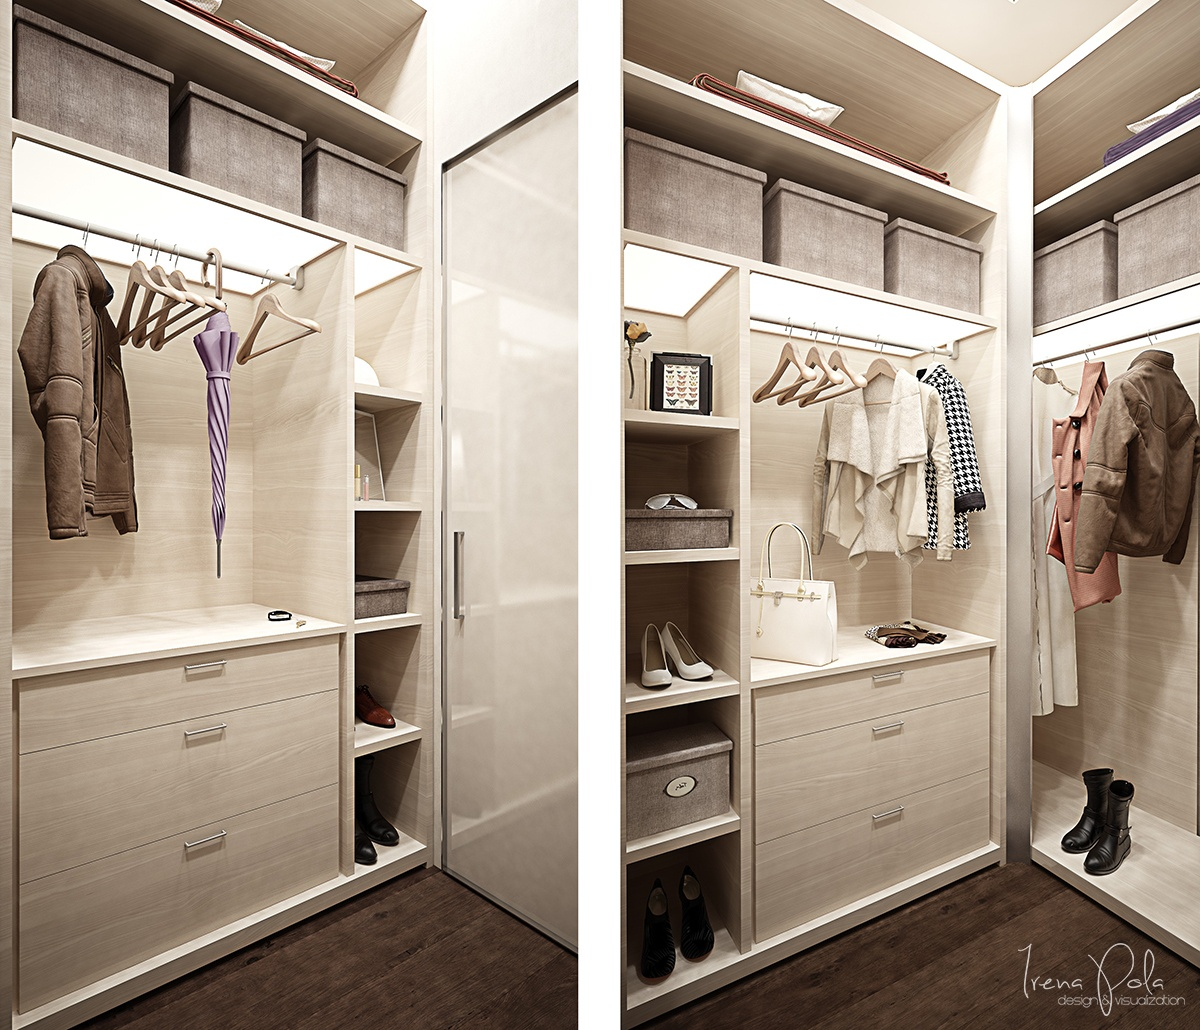 Walk in closet ideas interior design ideas for Walk in closets designs ideas